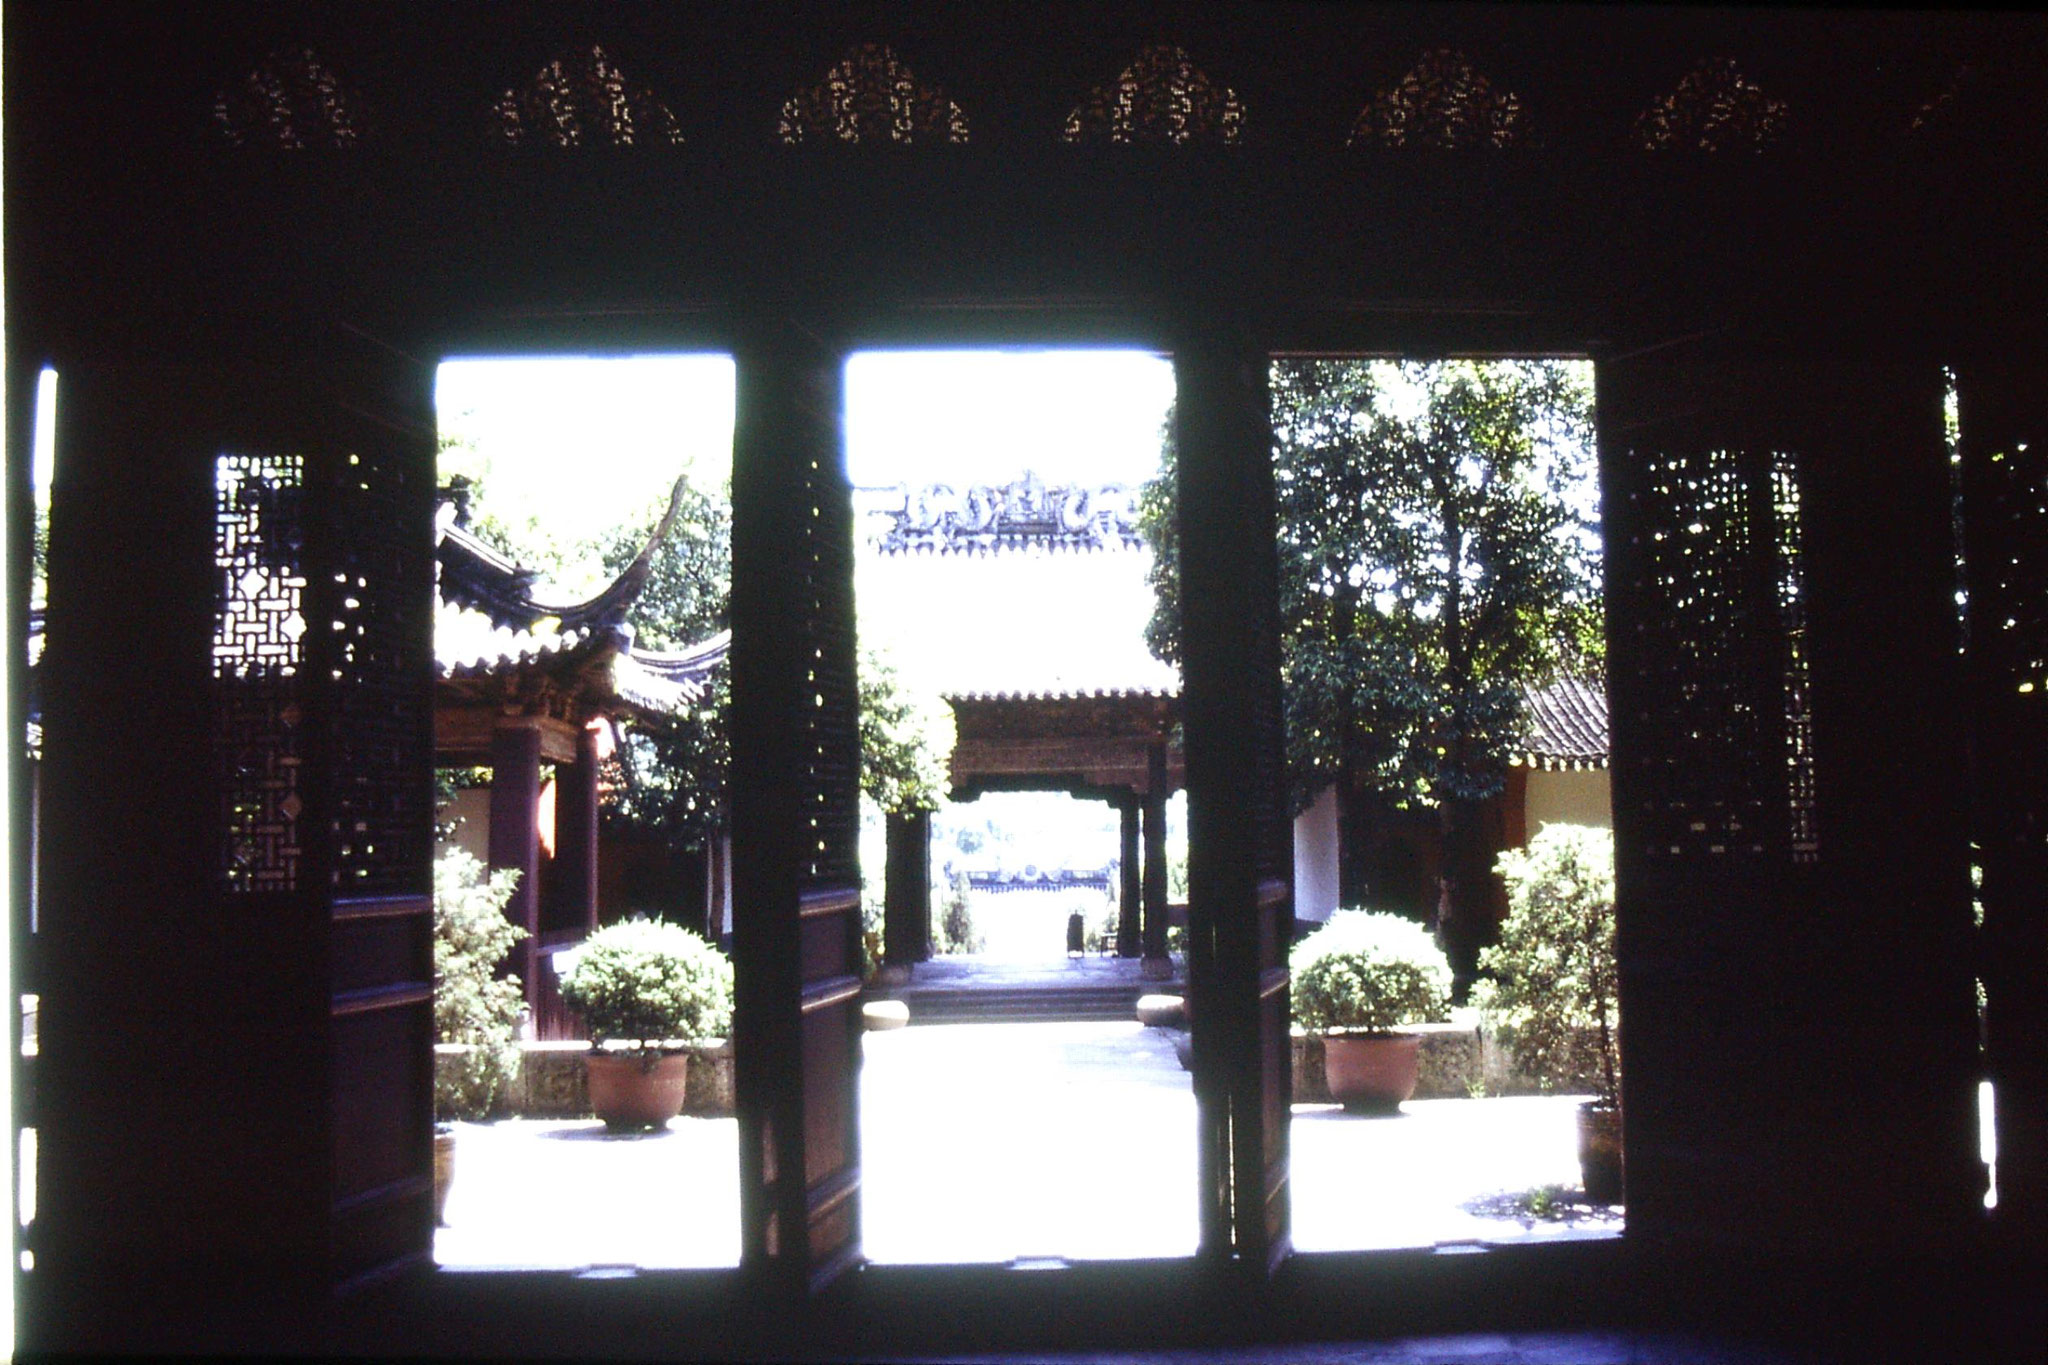 3/6/1989: 7: Shaoxing